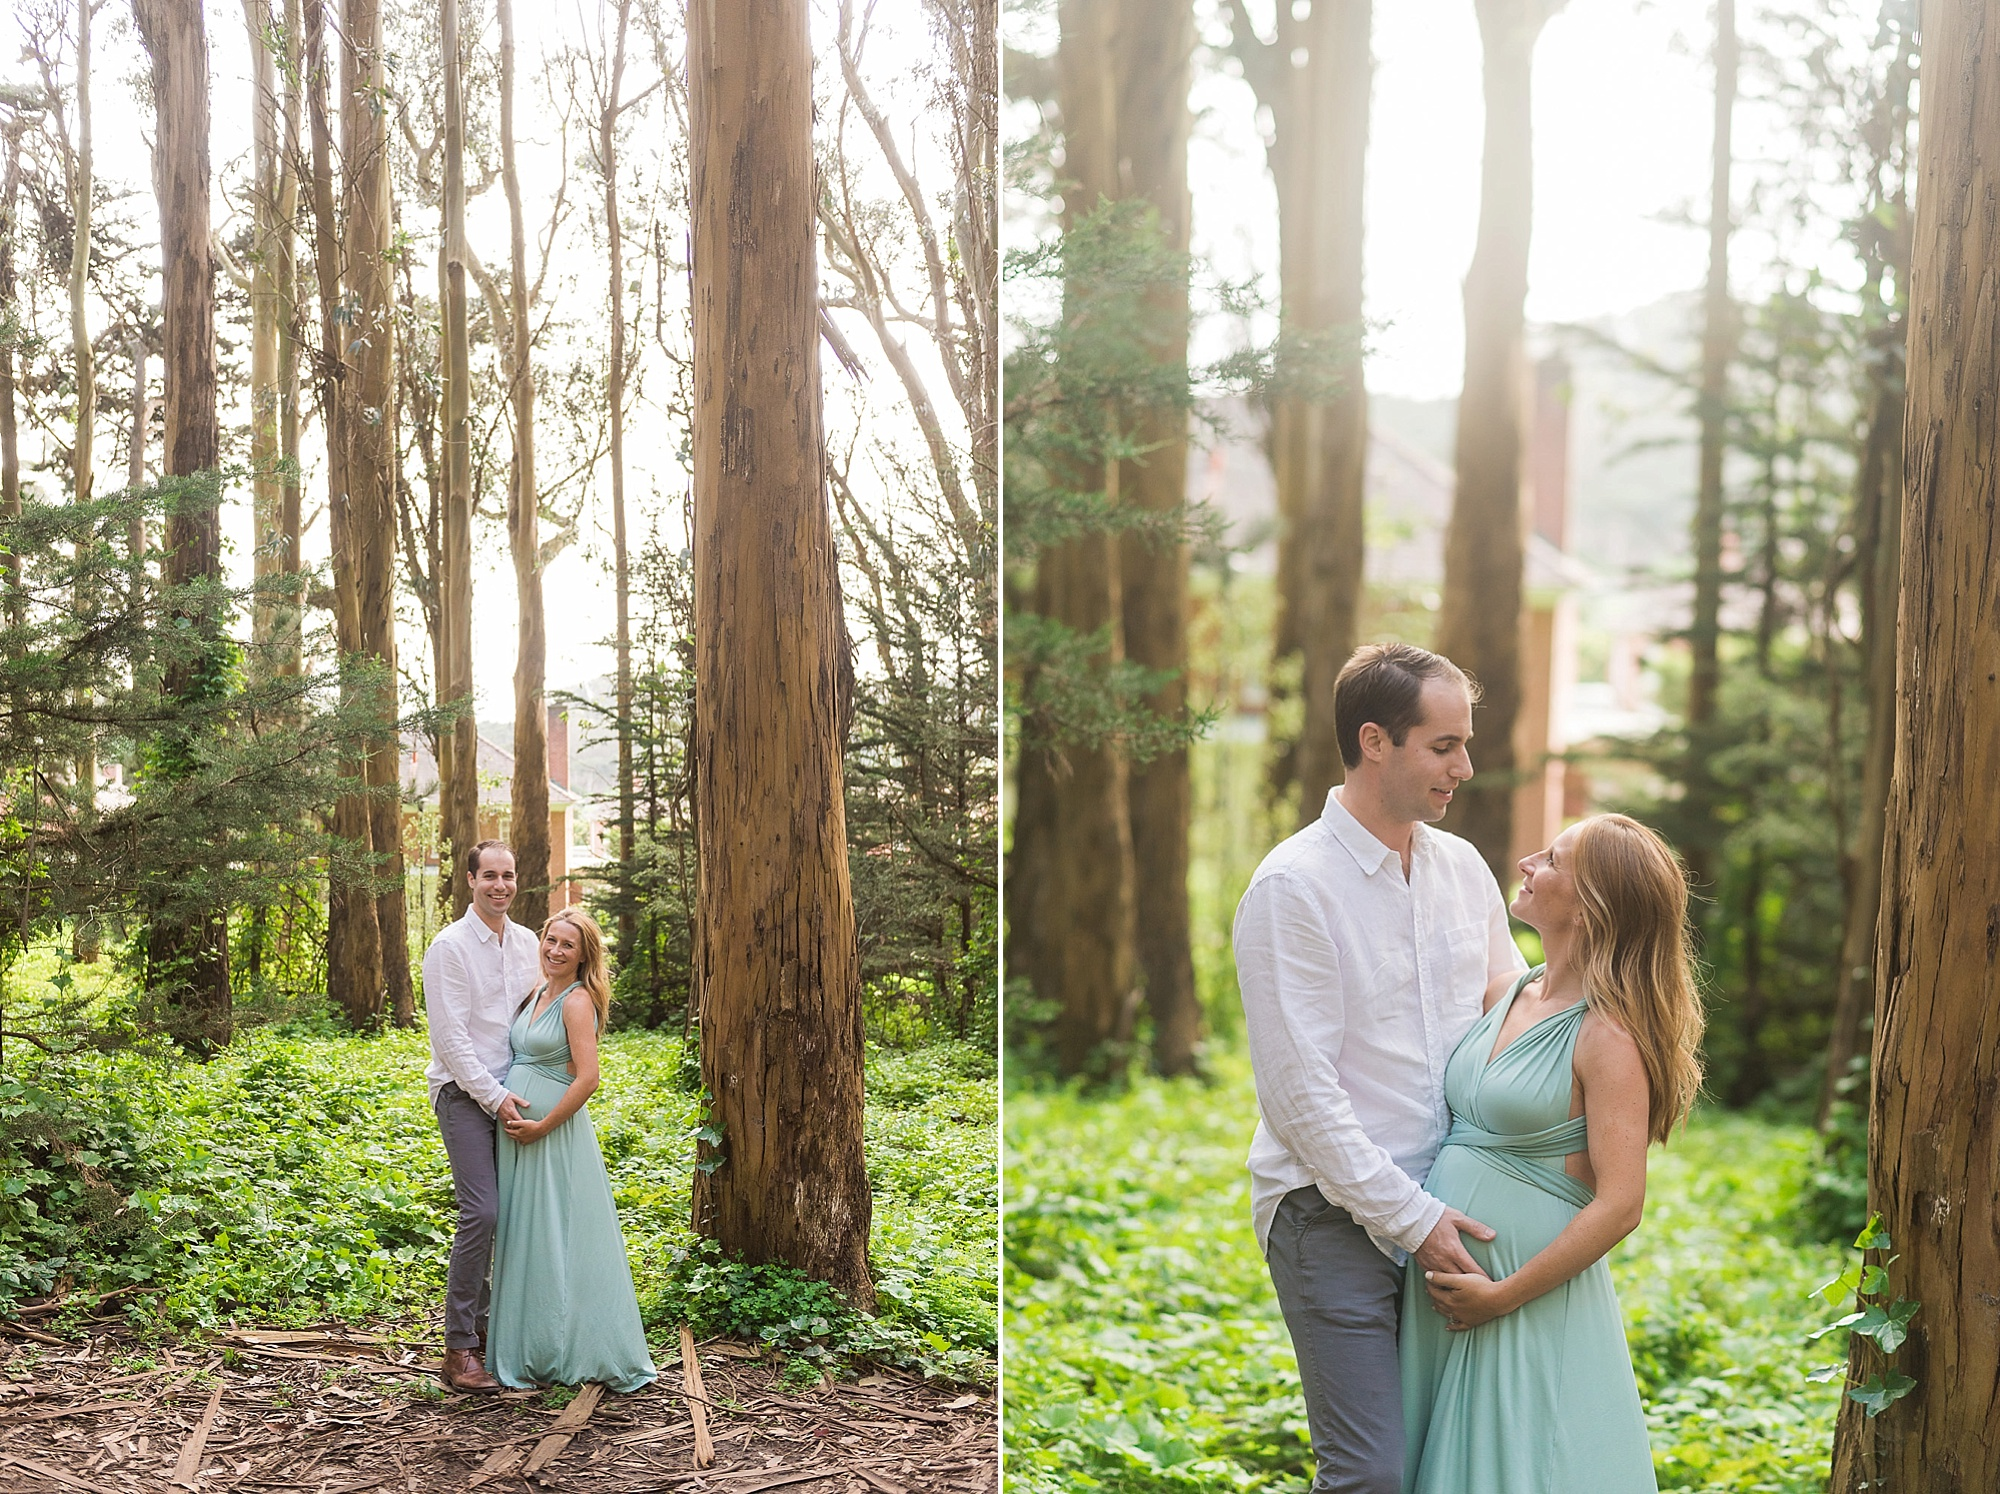 Wood Line maternity photography